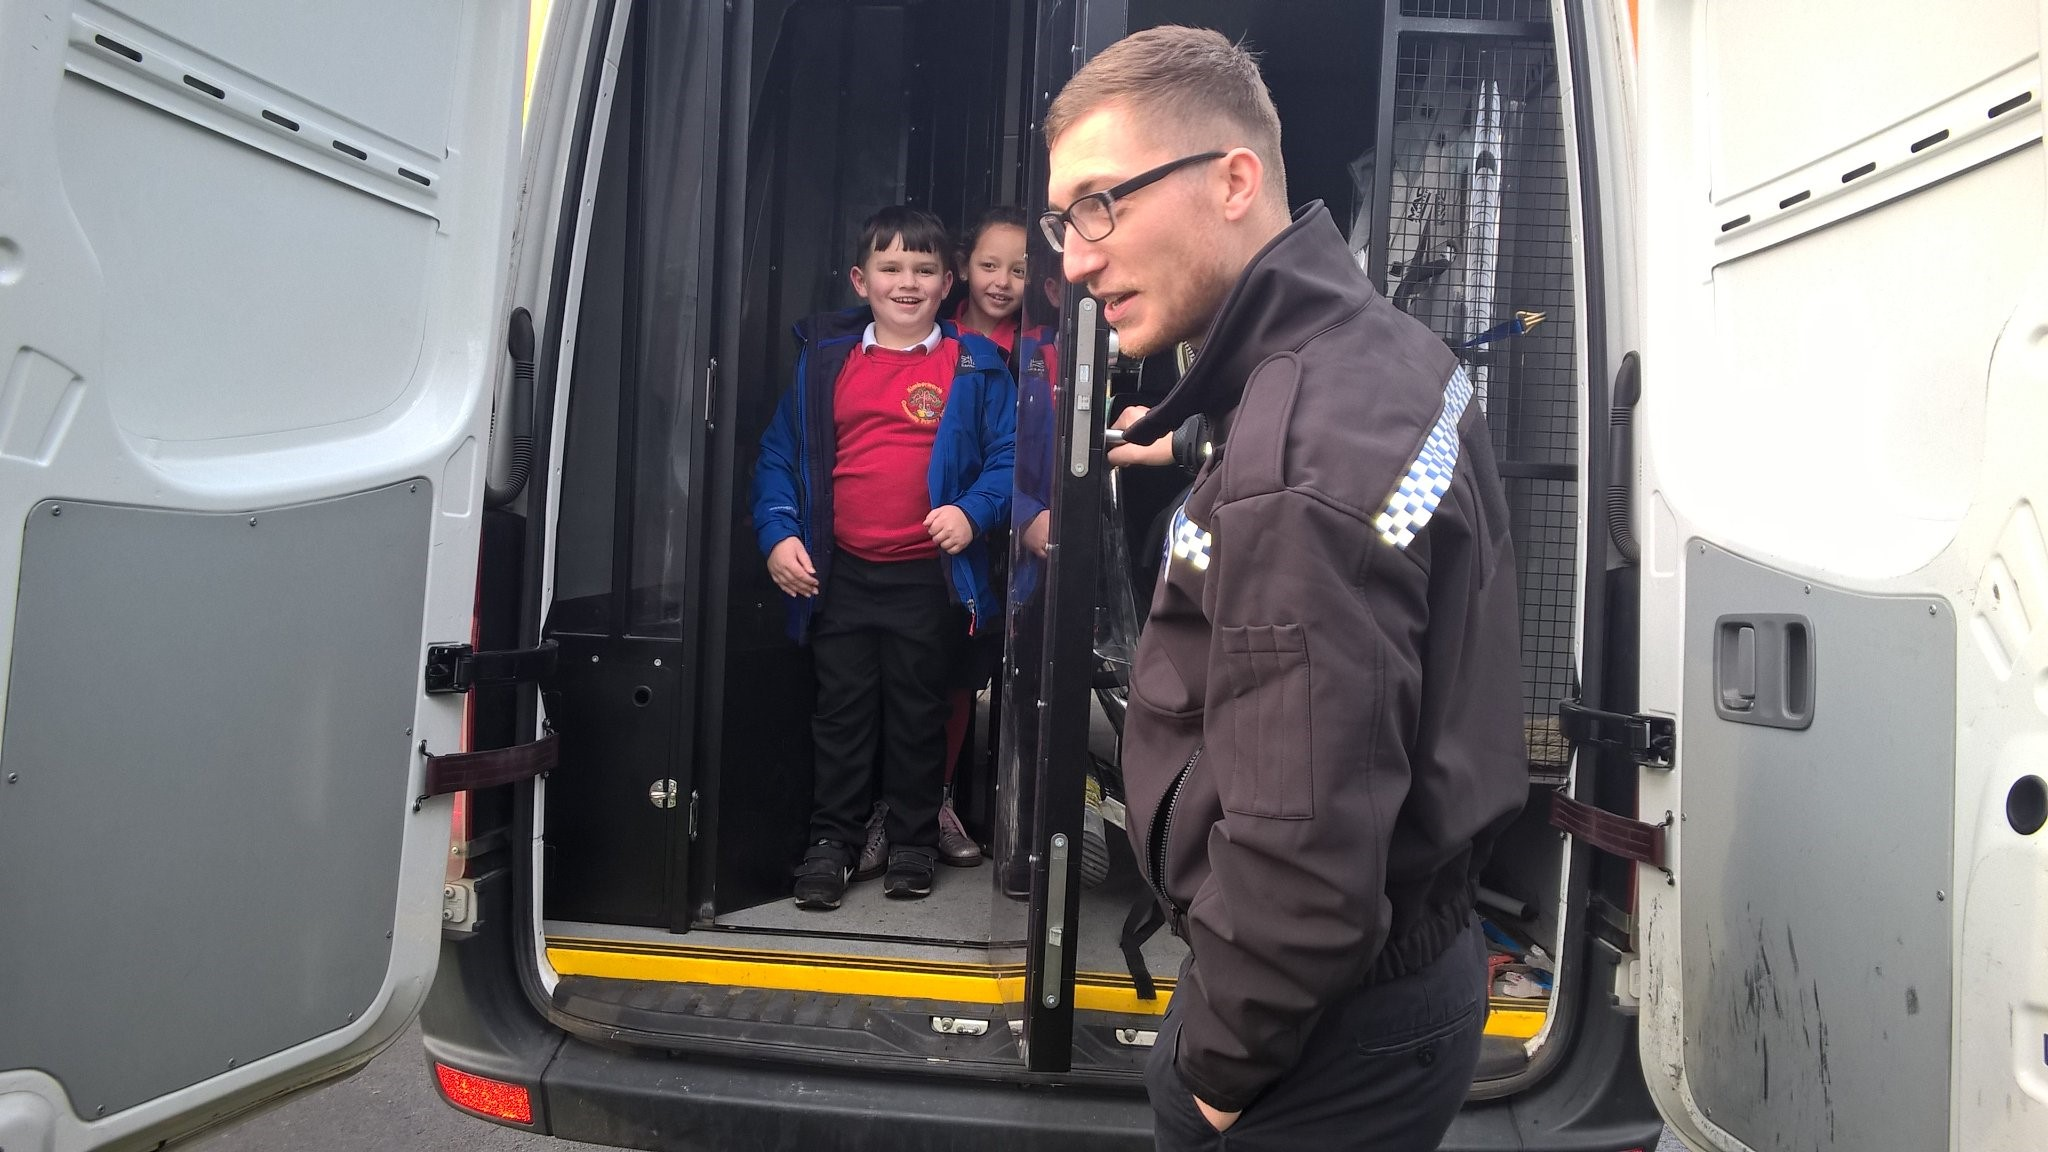 P.C Matt Baker showing children the back of a police van